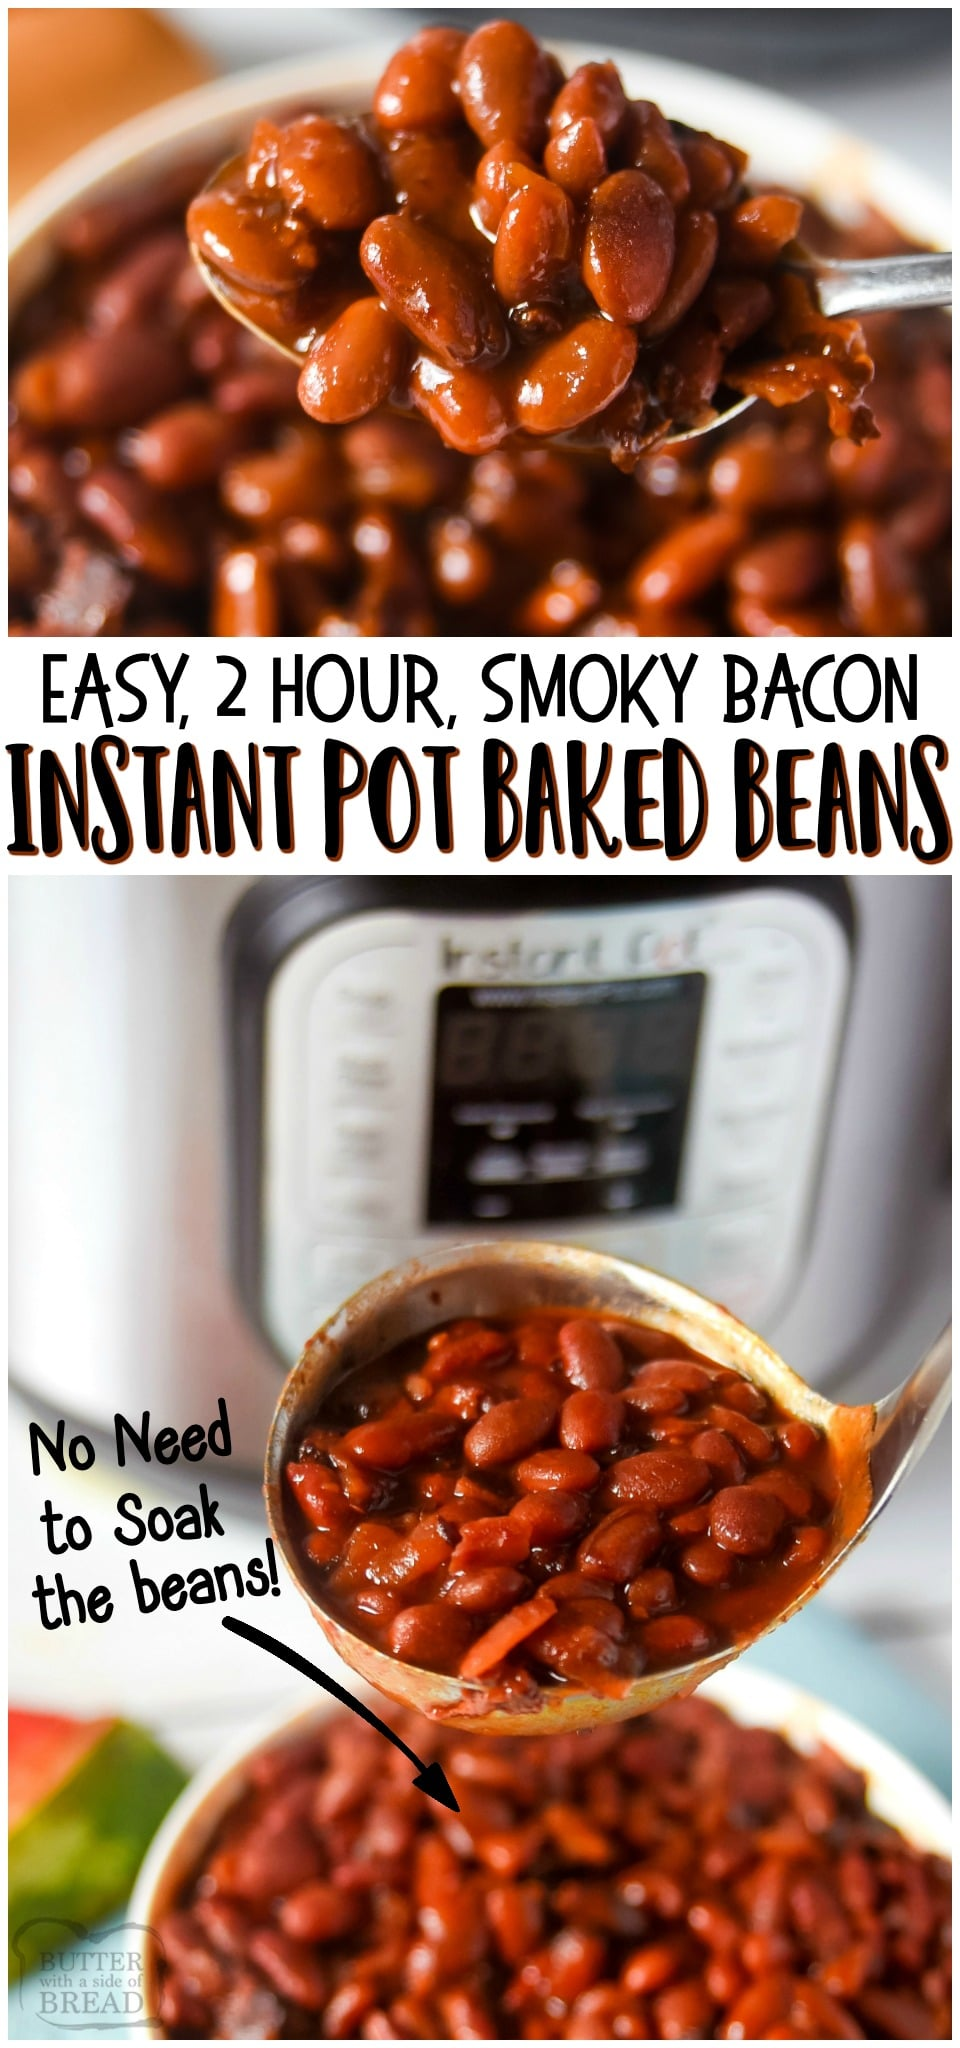 Easy Instant Pot Smoky Baked Beans are made with dry pinto beans (no soaking!), bacon, onion and spices! Hearty, flavorful baked bean recipe that tastes like it's been slow cooking for days, even though it's done in 2 hours!